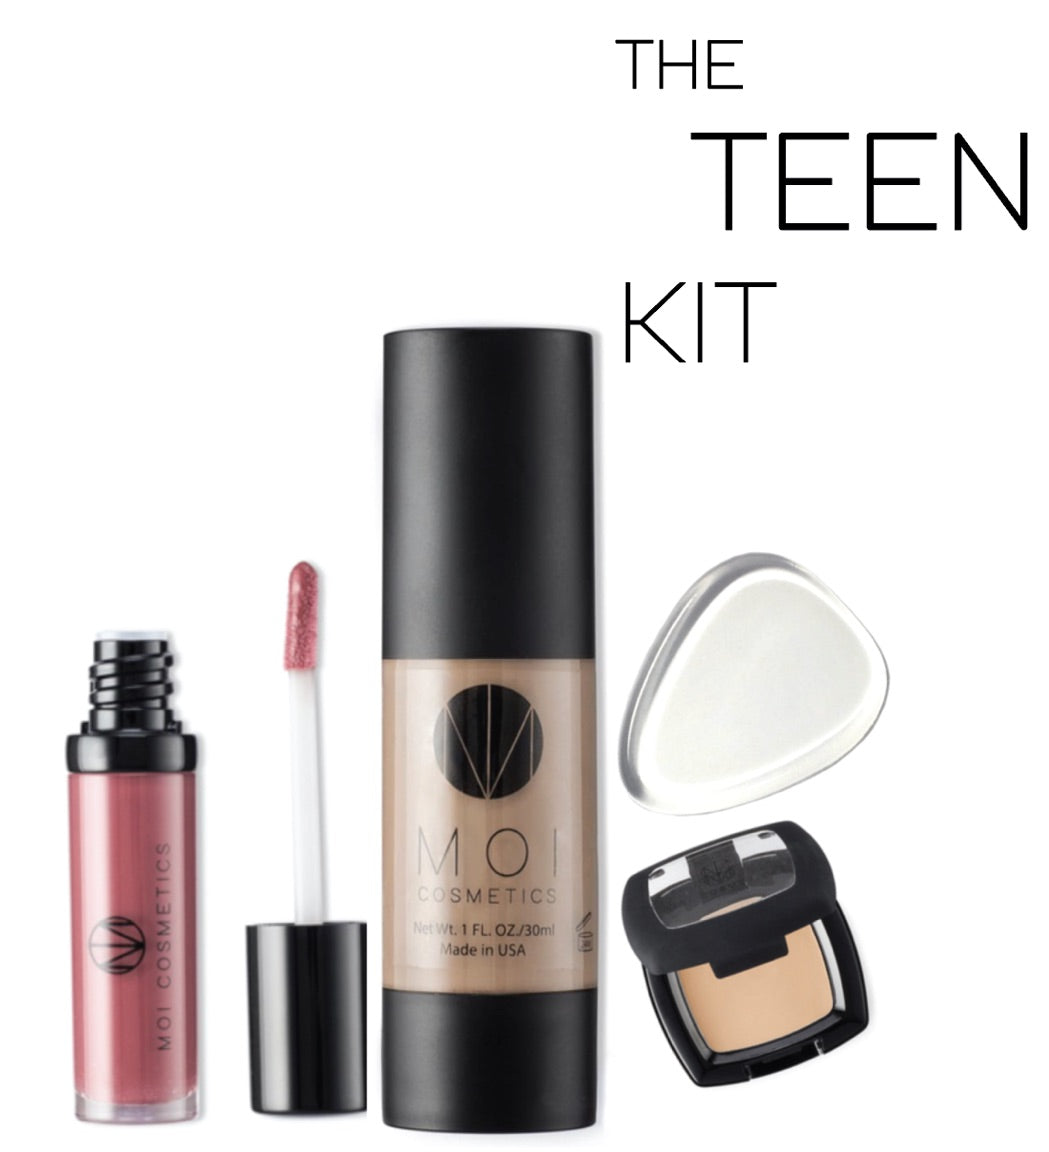 The Teen Kit